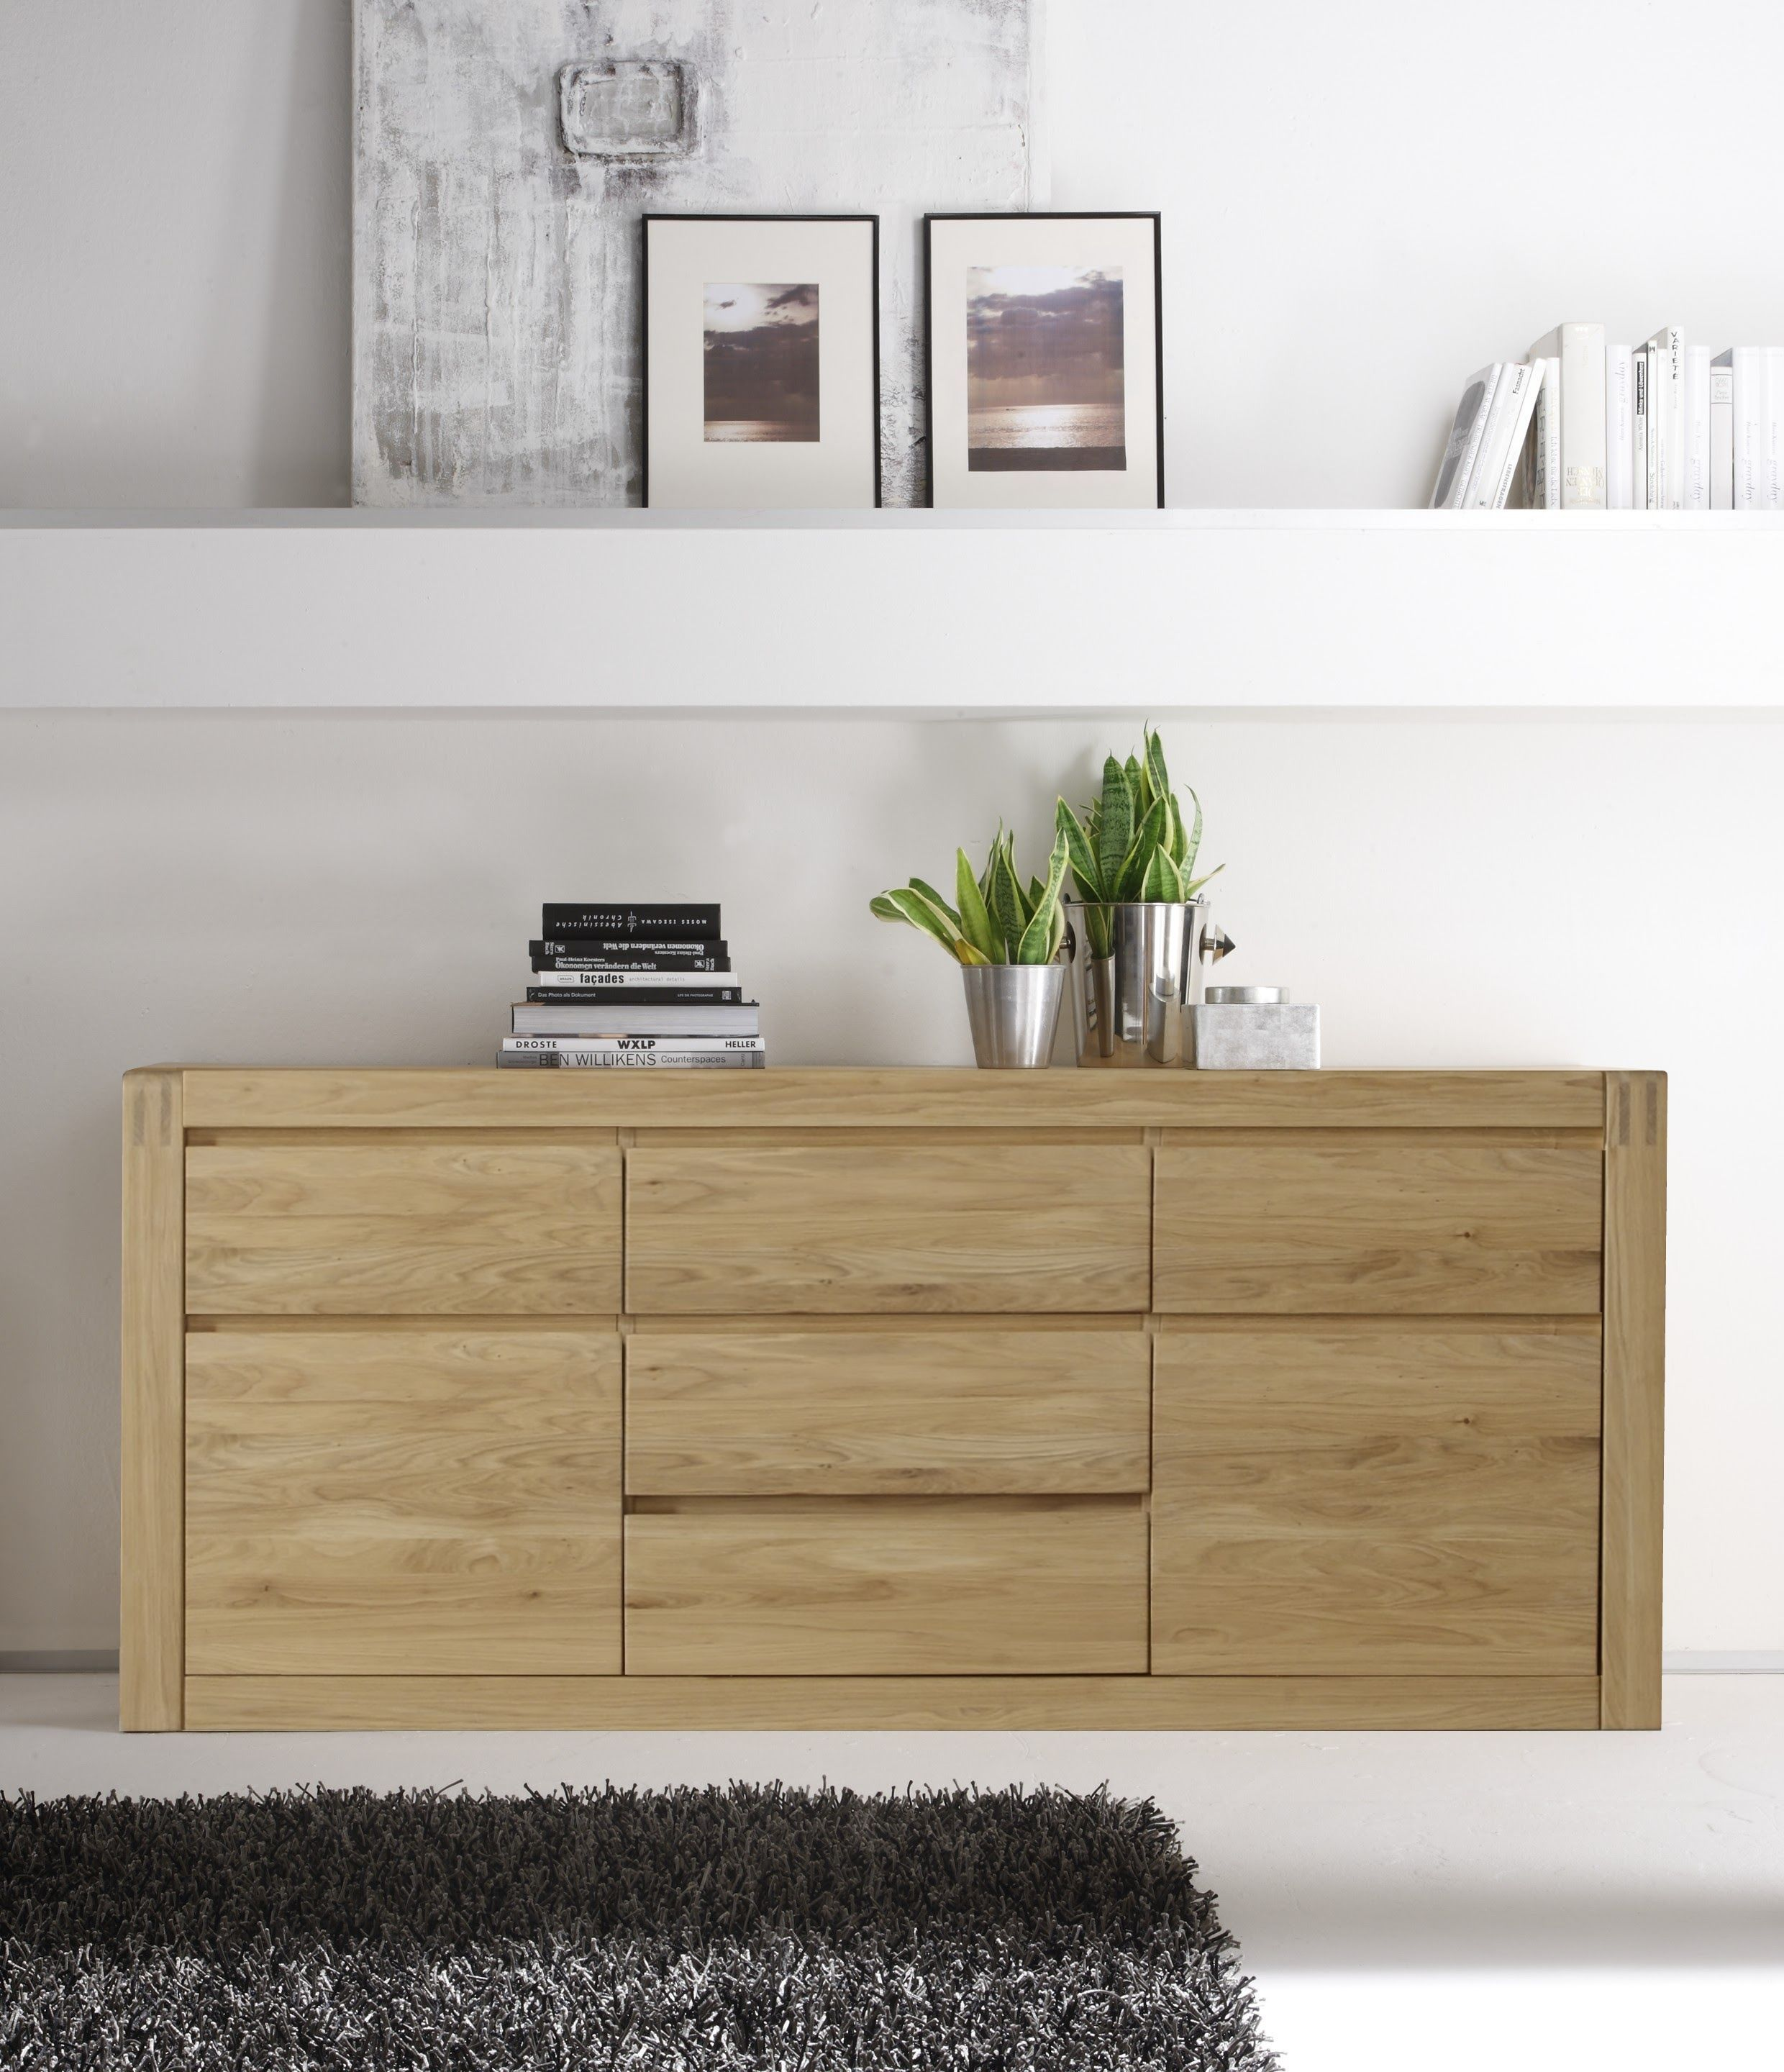 sideboard eiche bianco teilmassiv woody 35 00200 holz modern jetzt bestellen unter https. Black Bedroom Furniture Sets. Home Design Ideas